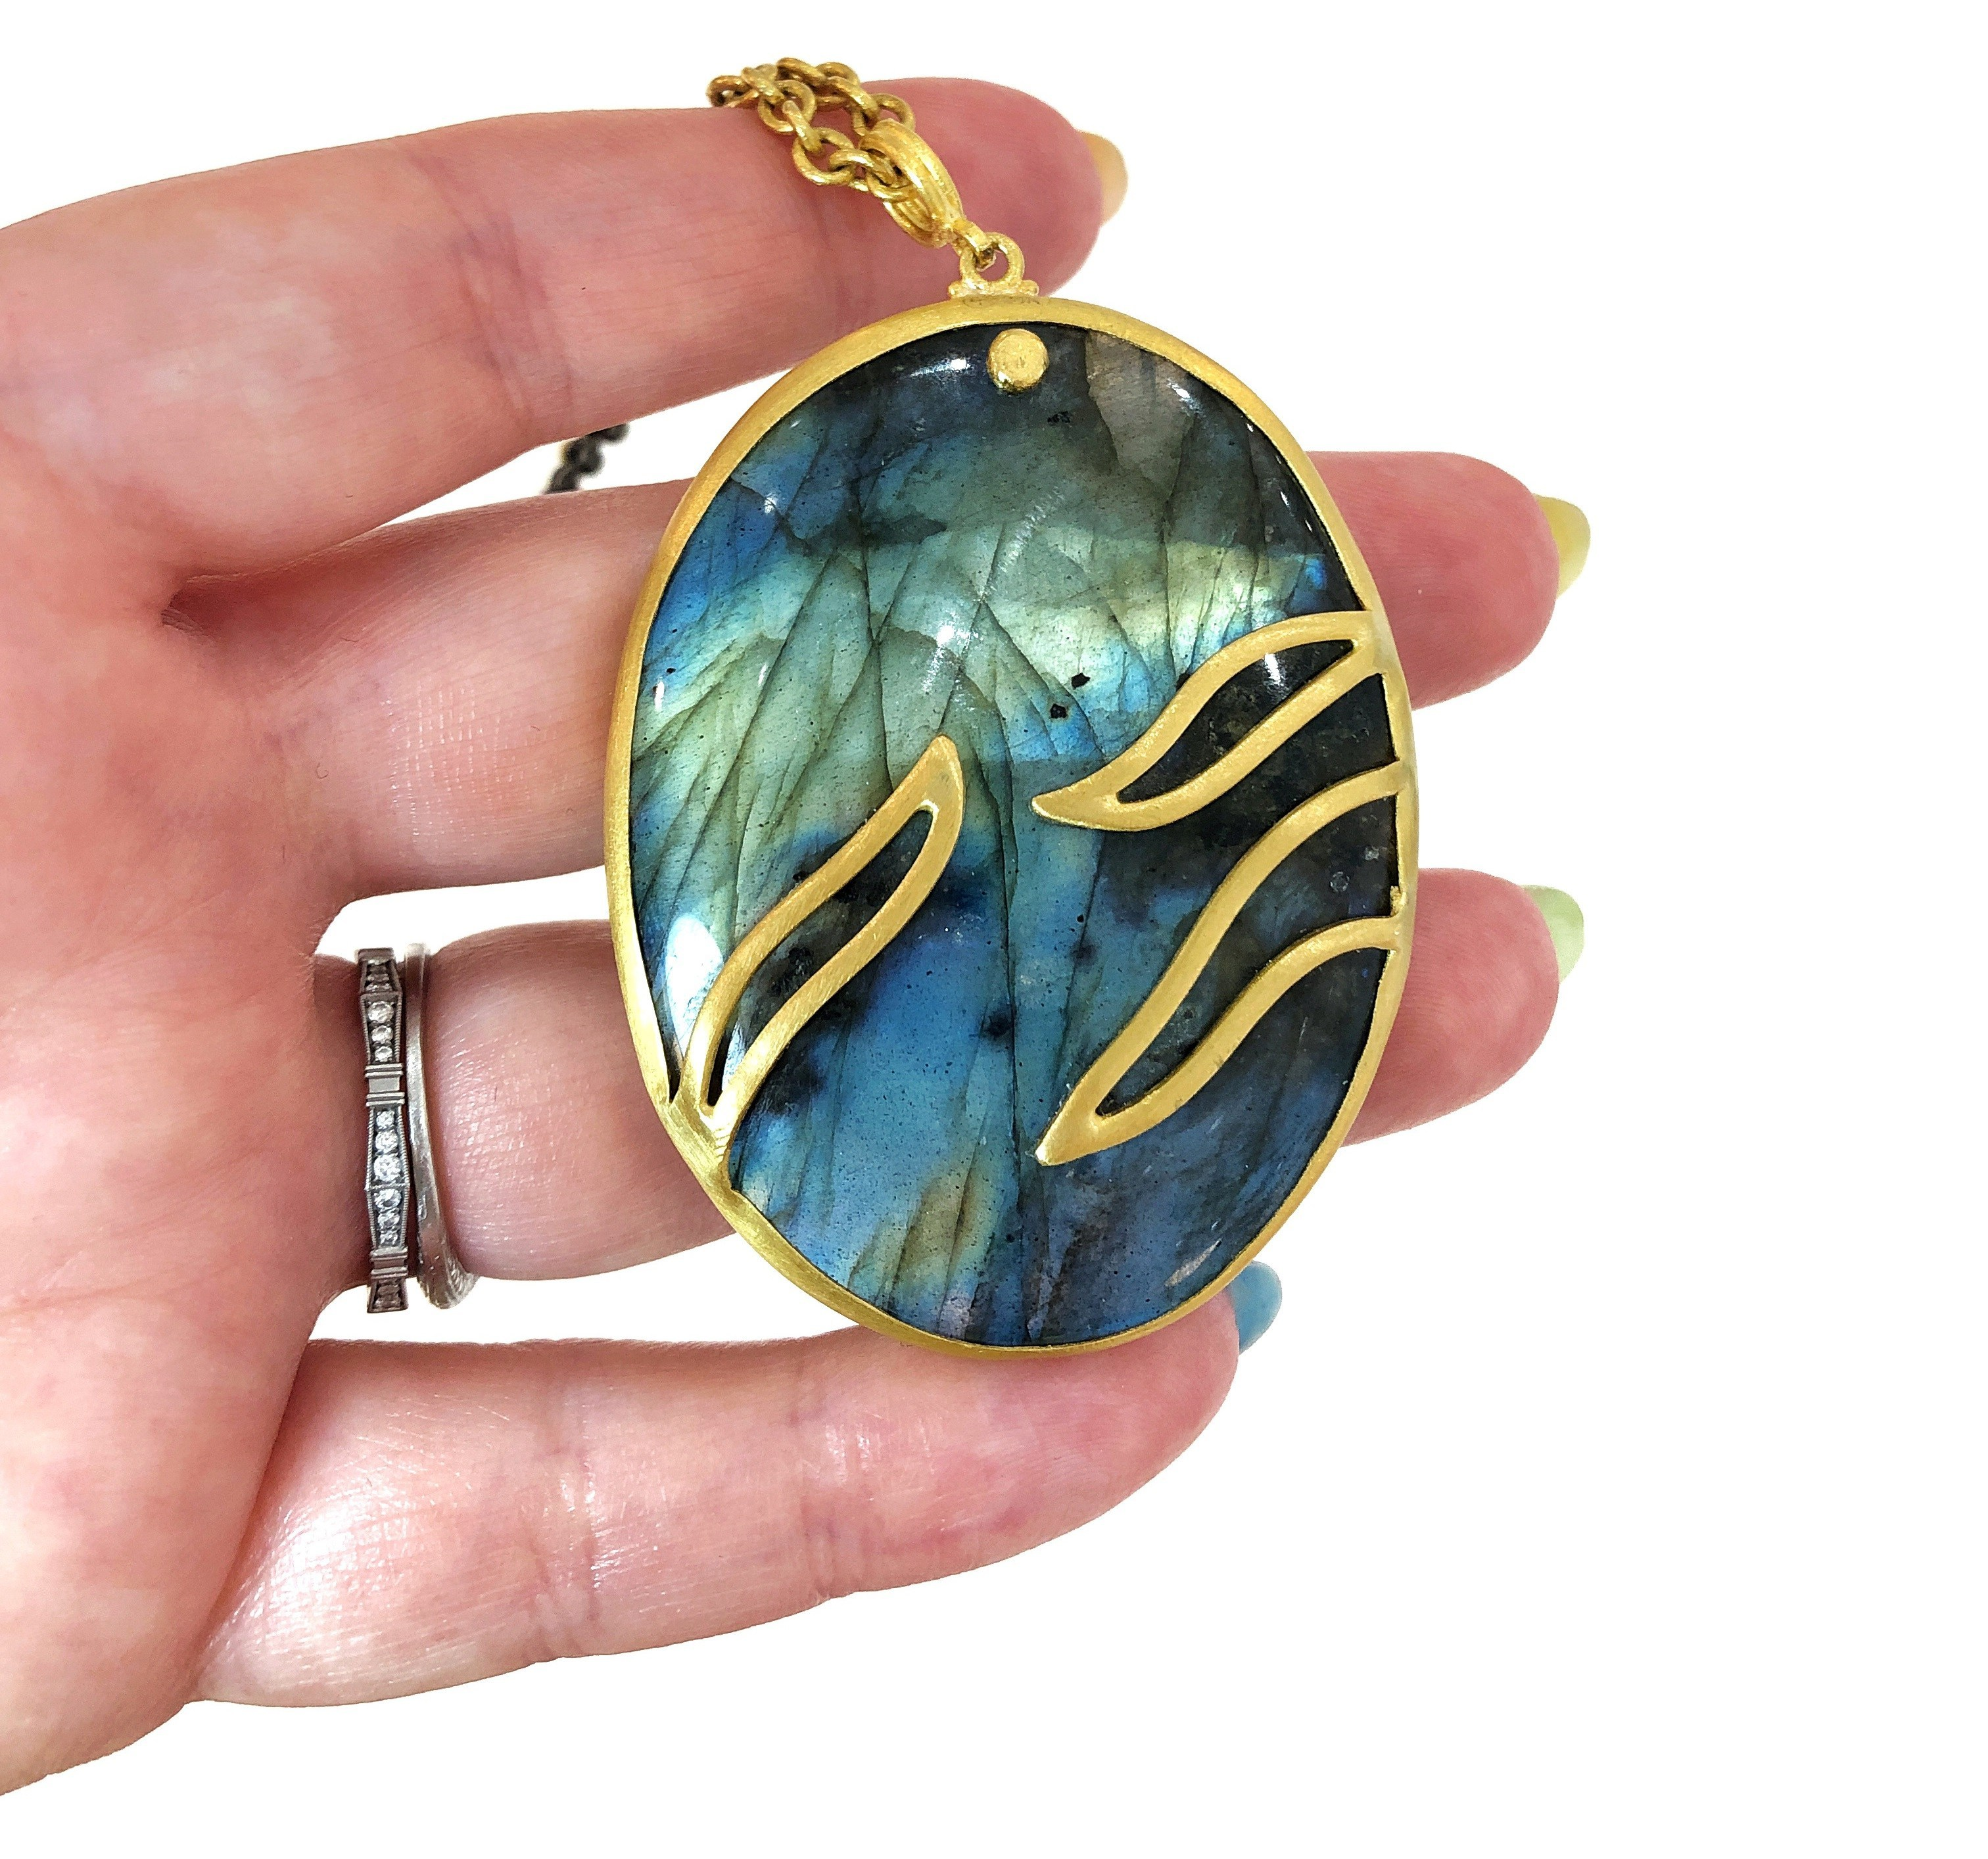 An exquisite labradorite and gold pendant necklace by Lika Behar.